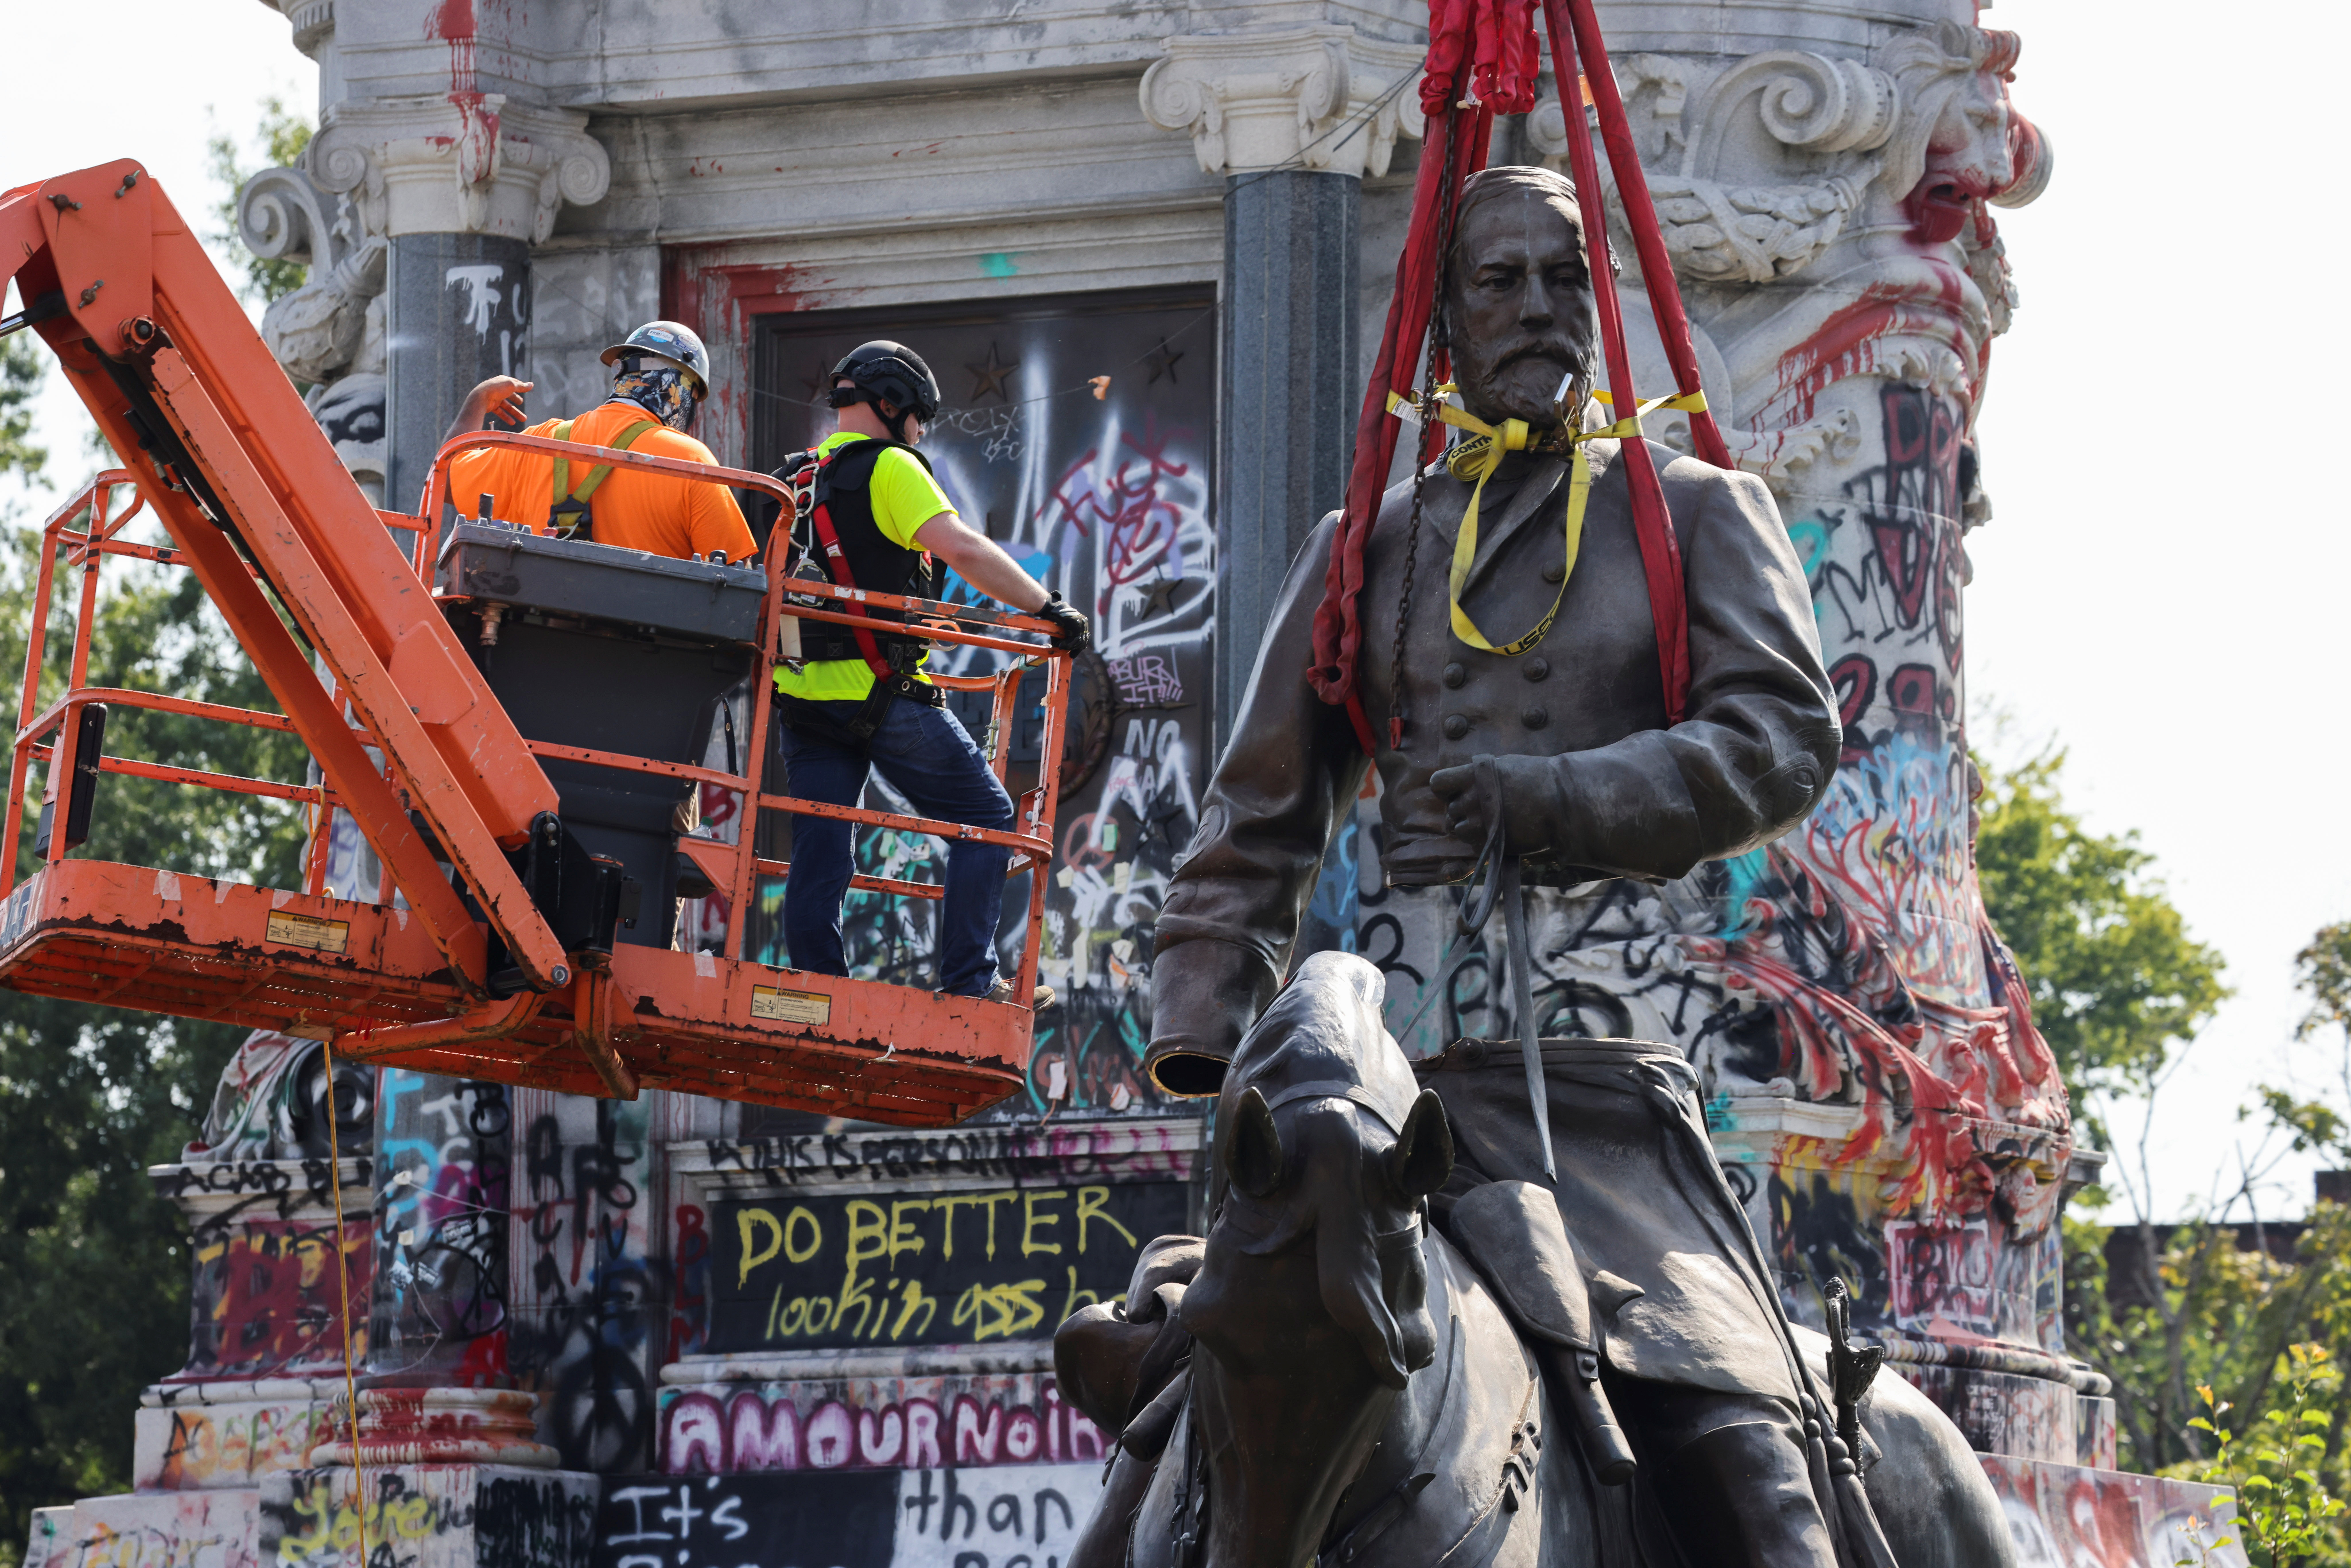 The statue of Confederate General Robert E. Lee, the largest Confederate statue remaining in the United States, is removed by a construction team in Richmond, Virginia, U.S. September 8, 2021. REUTERS/Evelyn Hockstein